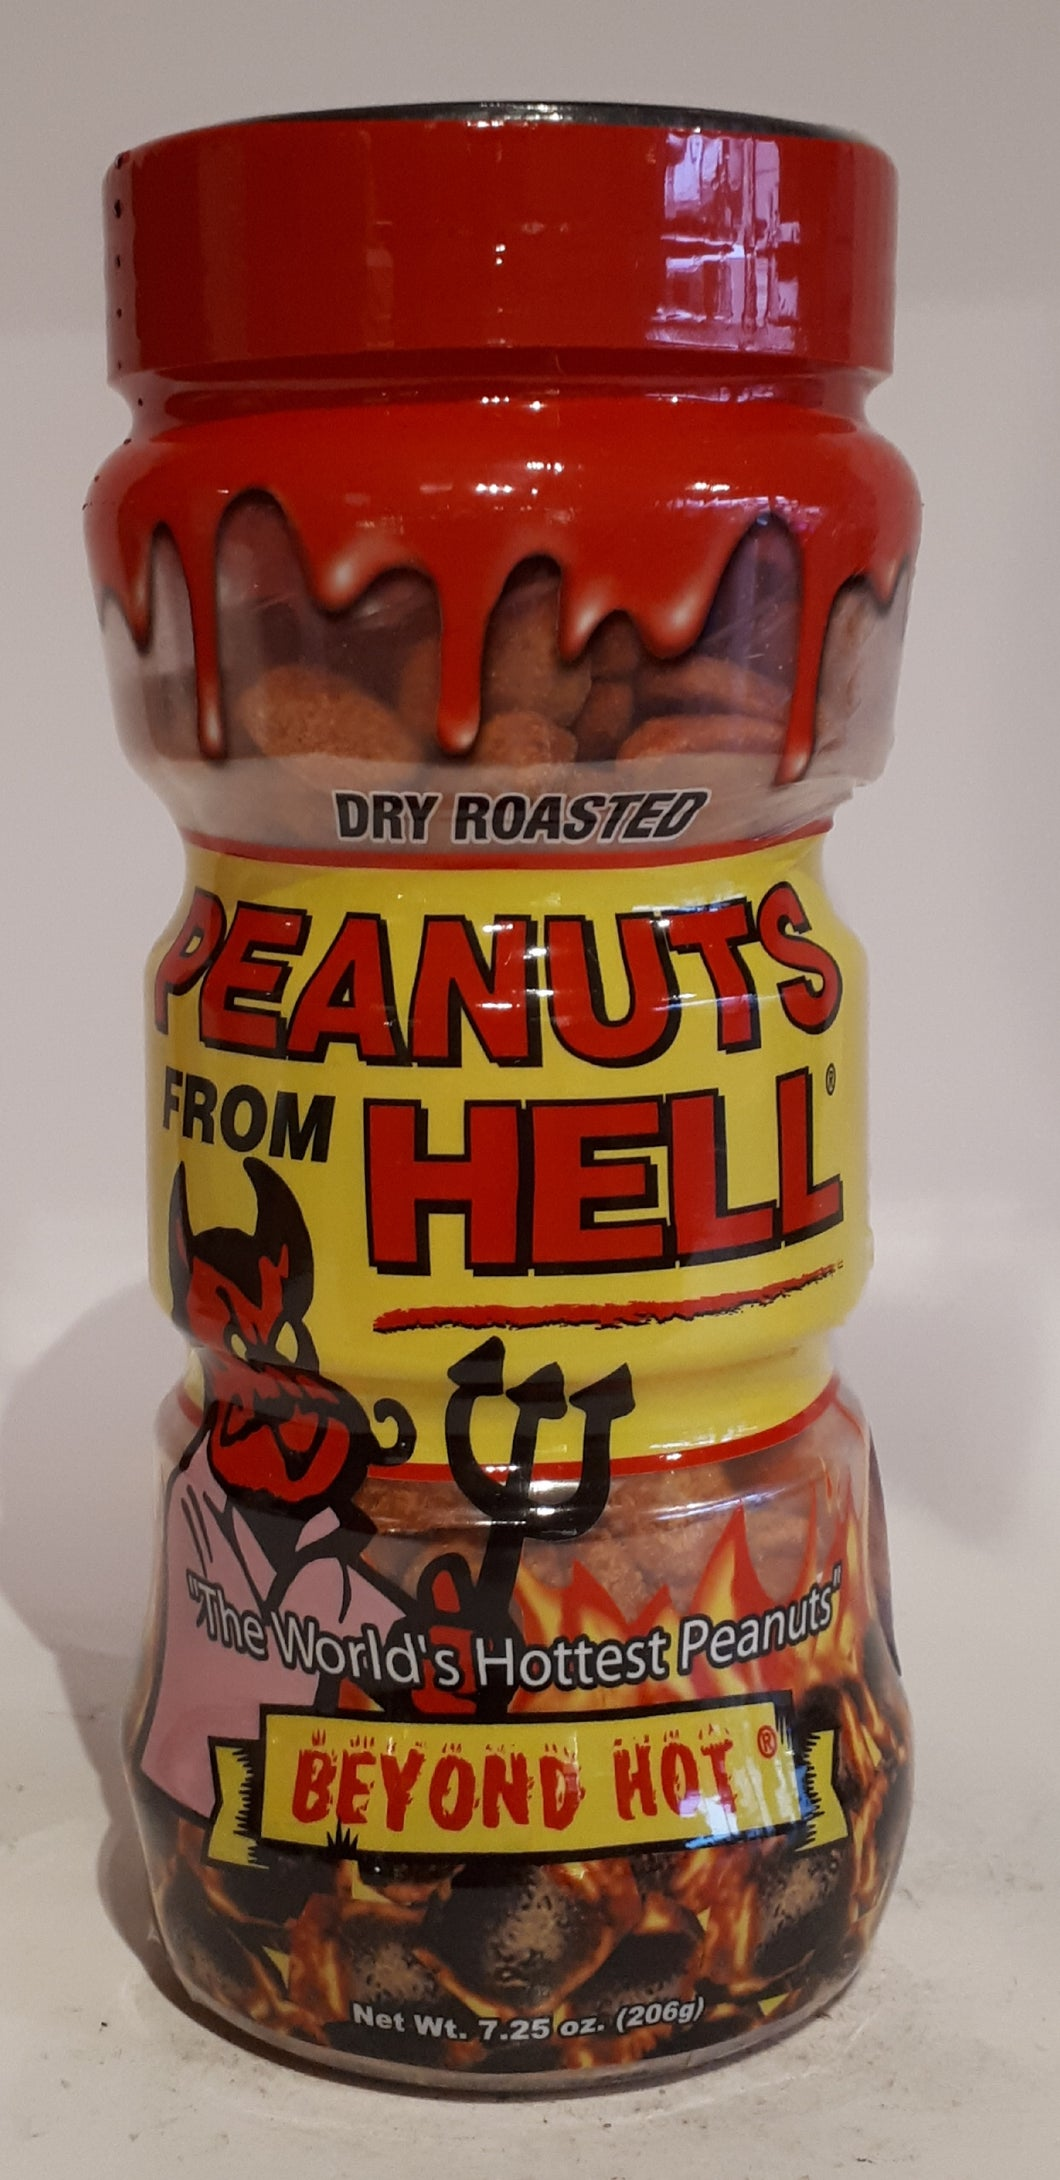 Peanuts From Hell Arachides Piquantes 206g